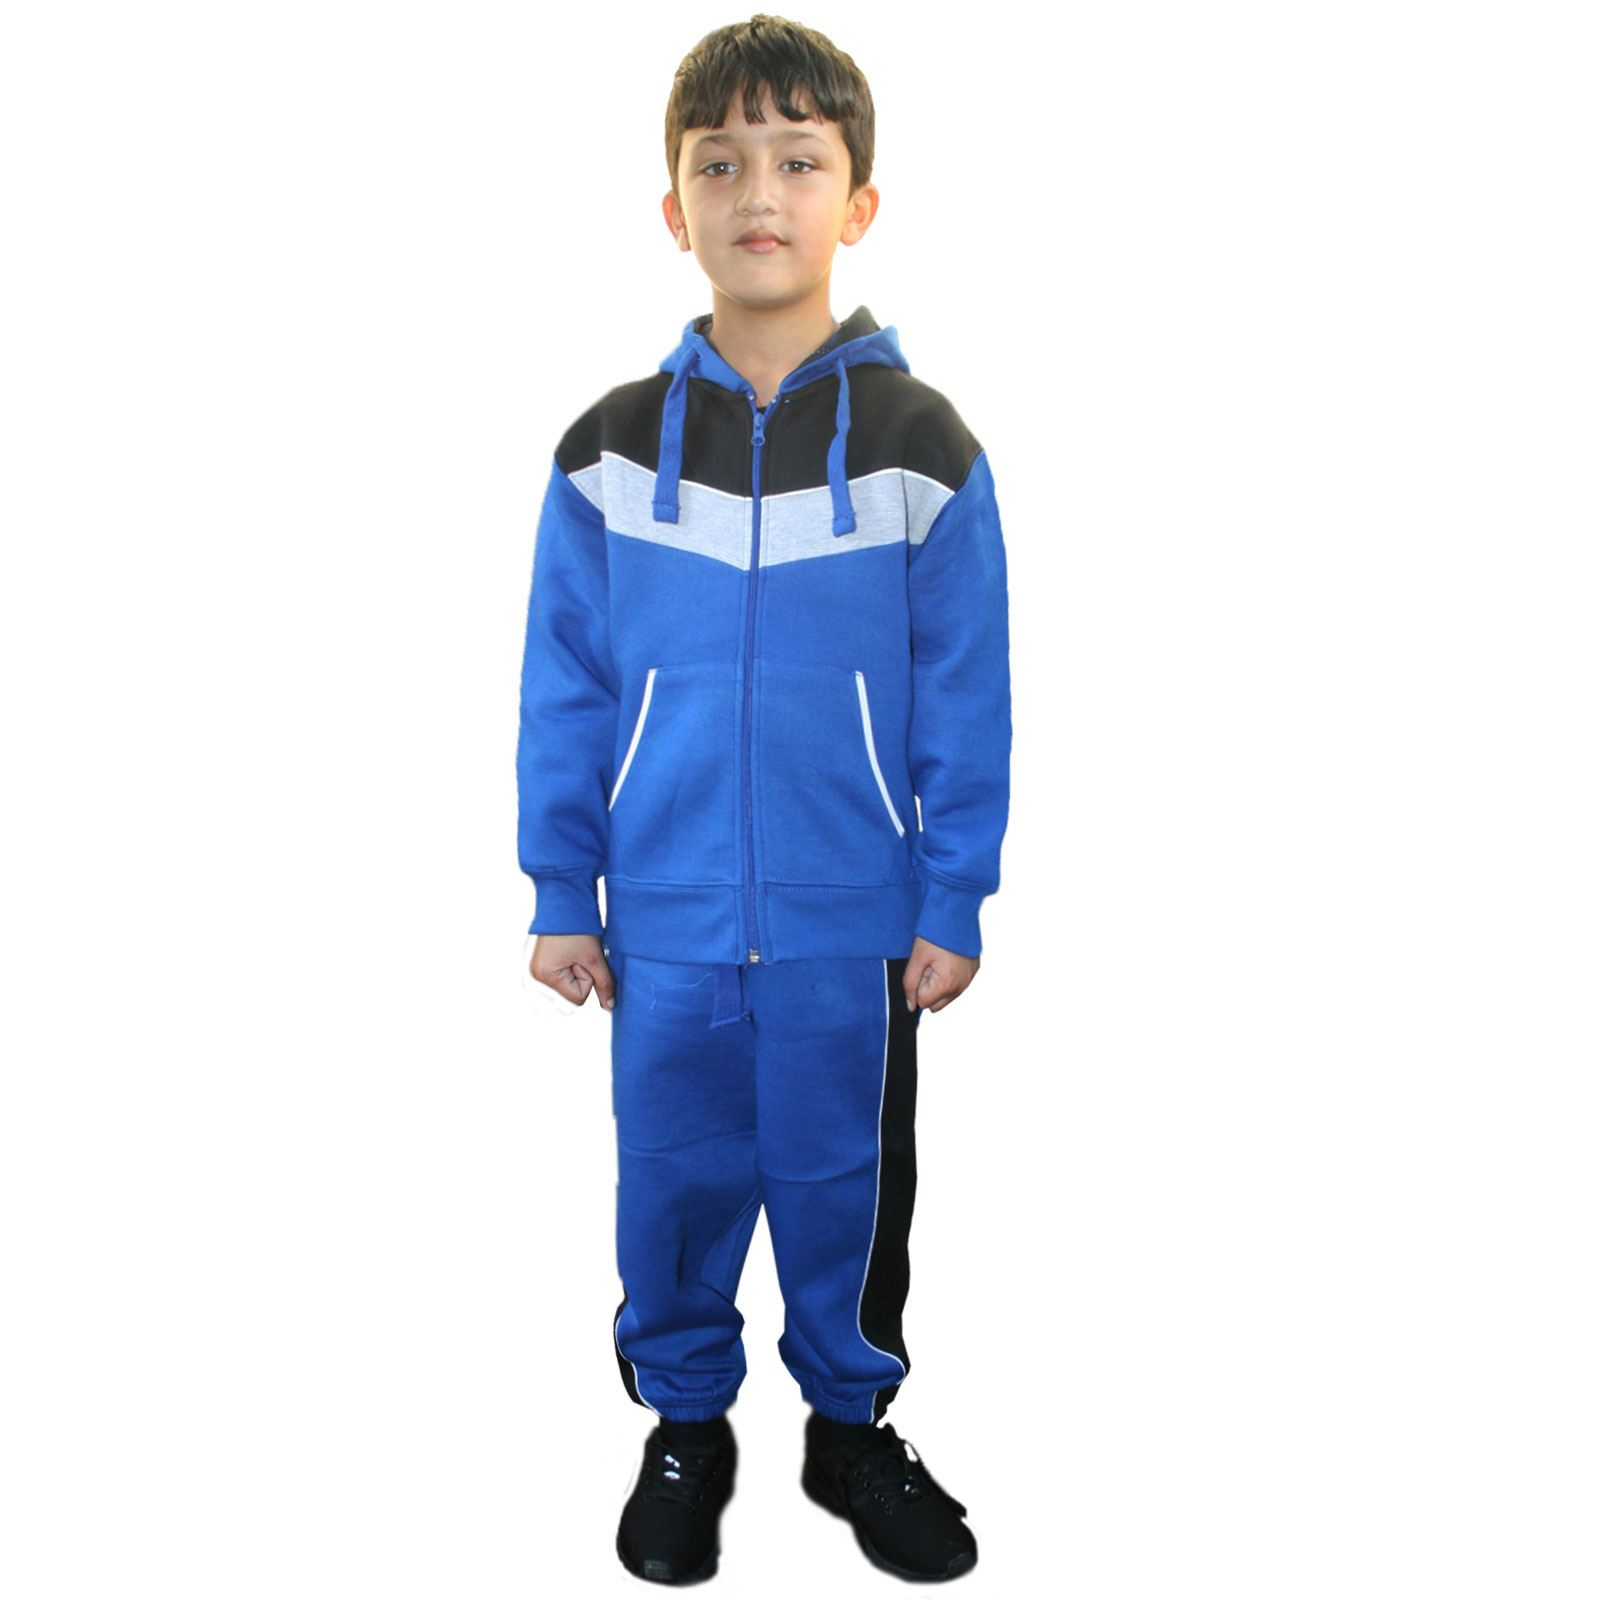 Find great deals on eBay for boys tracksuit. Shop with confidence.